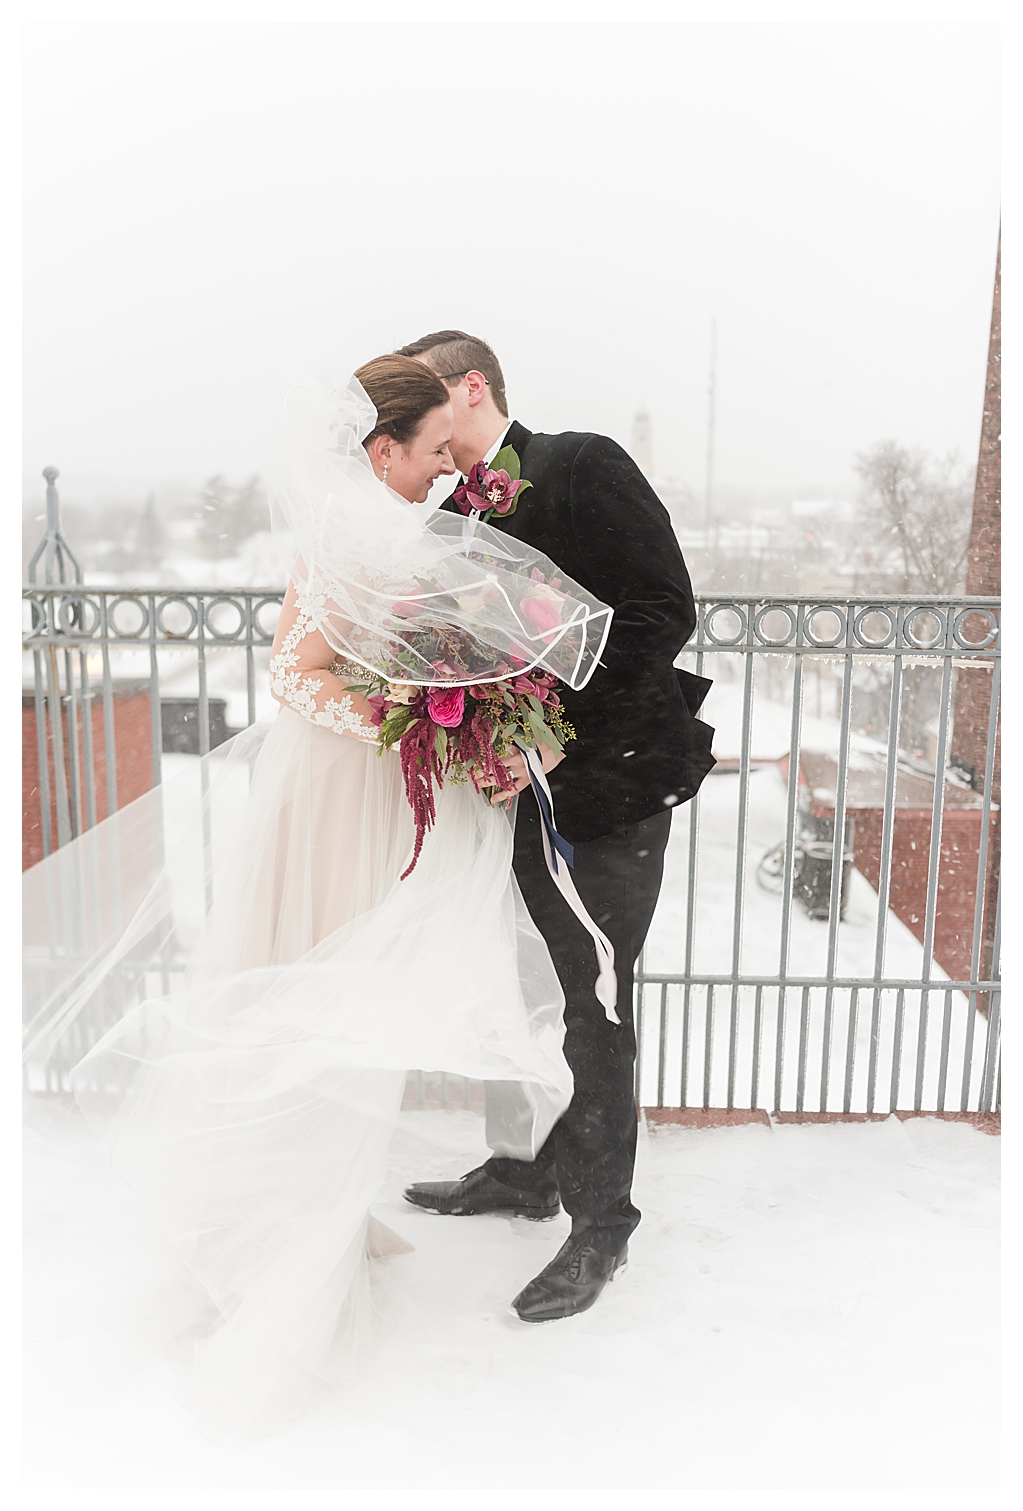 Winter Wedding at The Mill Top Indy Noblesville_1228.jpg